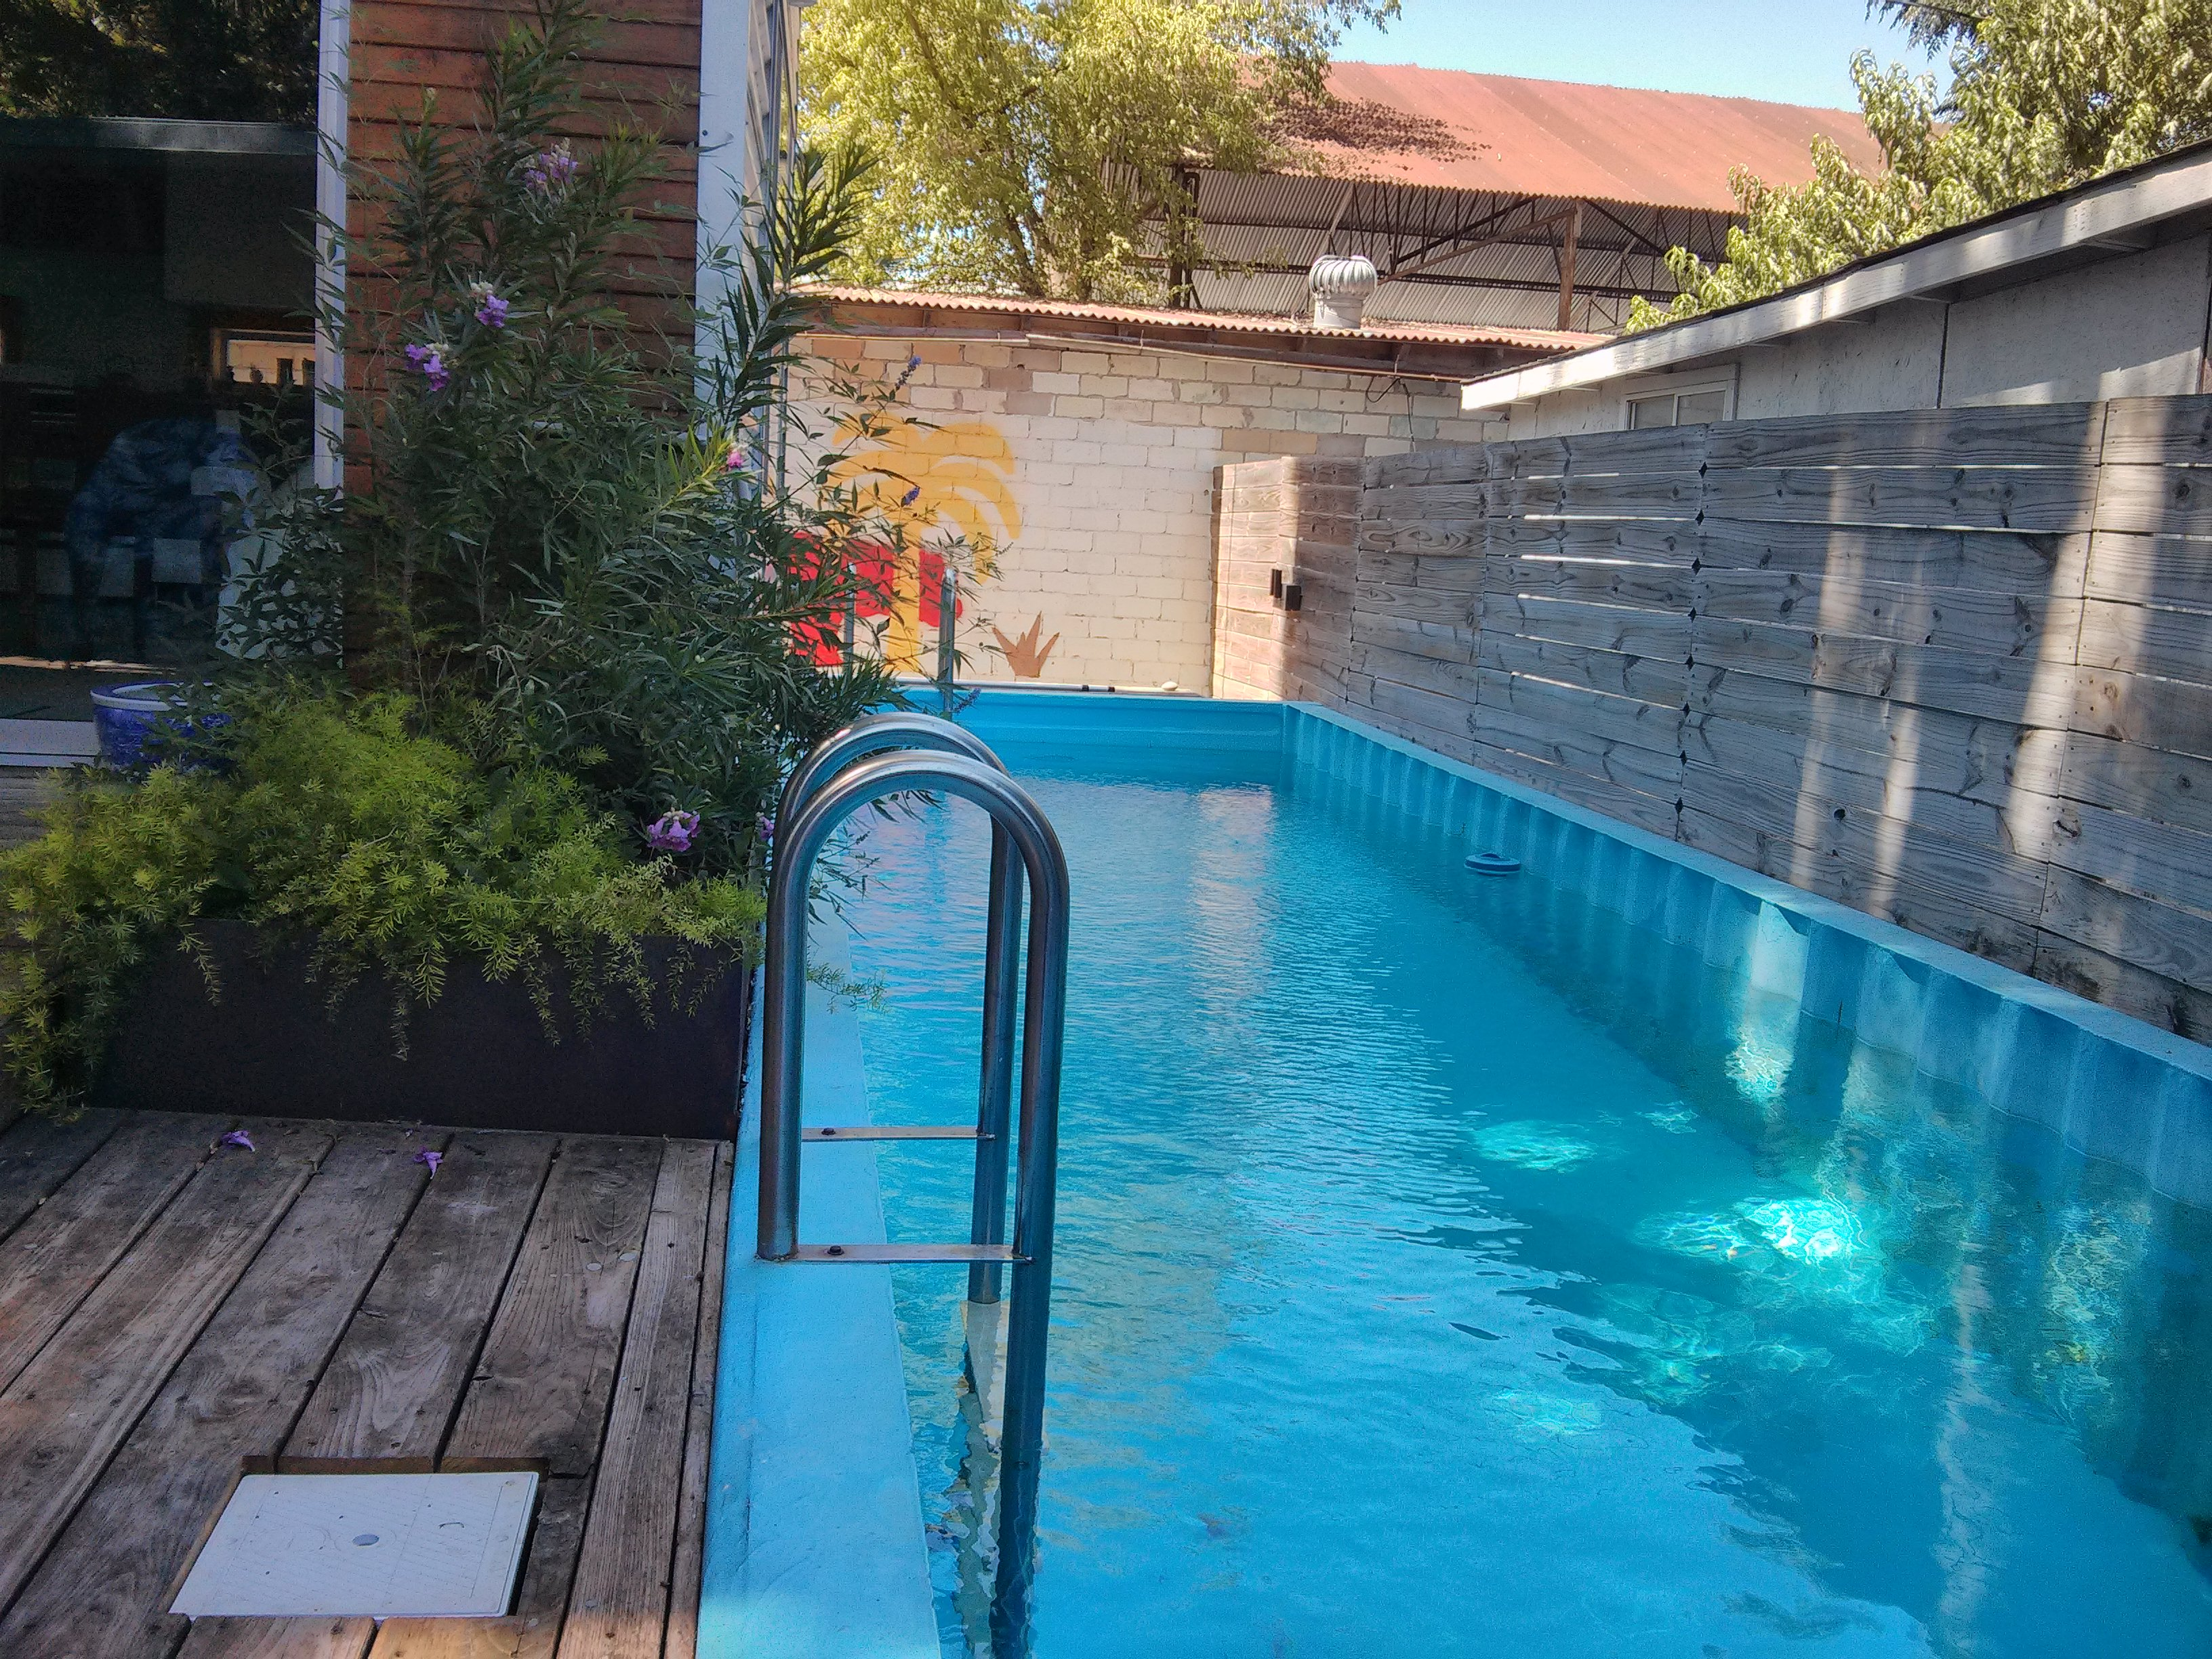 Best Kitchen Gallery: Shipping Container Pool Theepic of Shipping Container Pool on rachelxblog.com